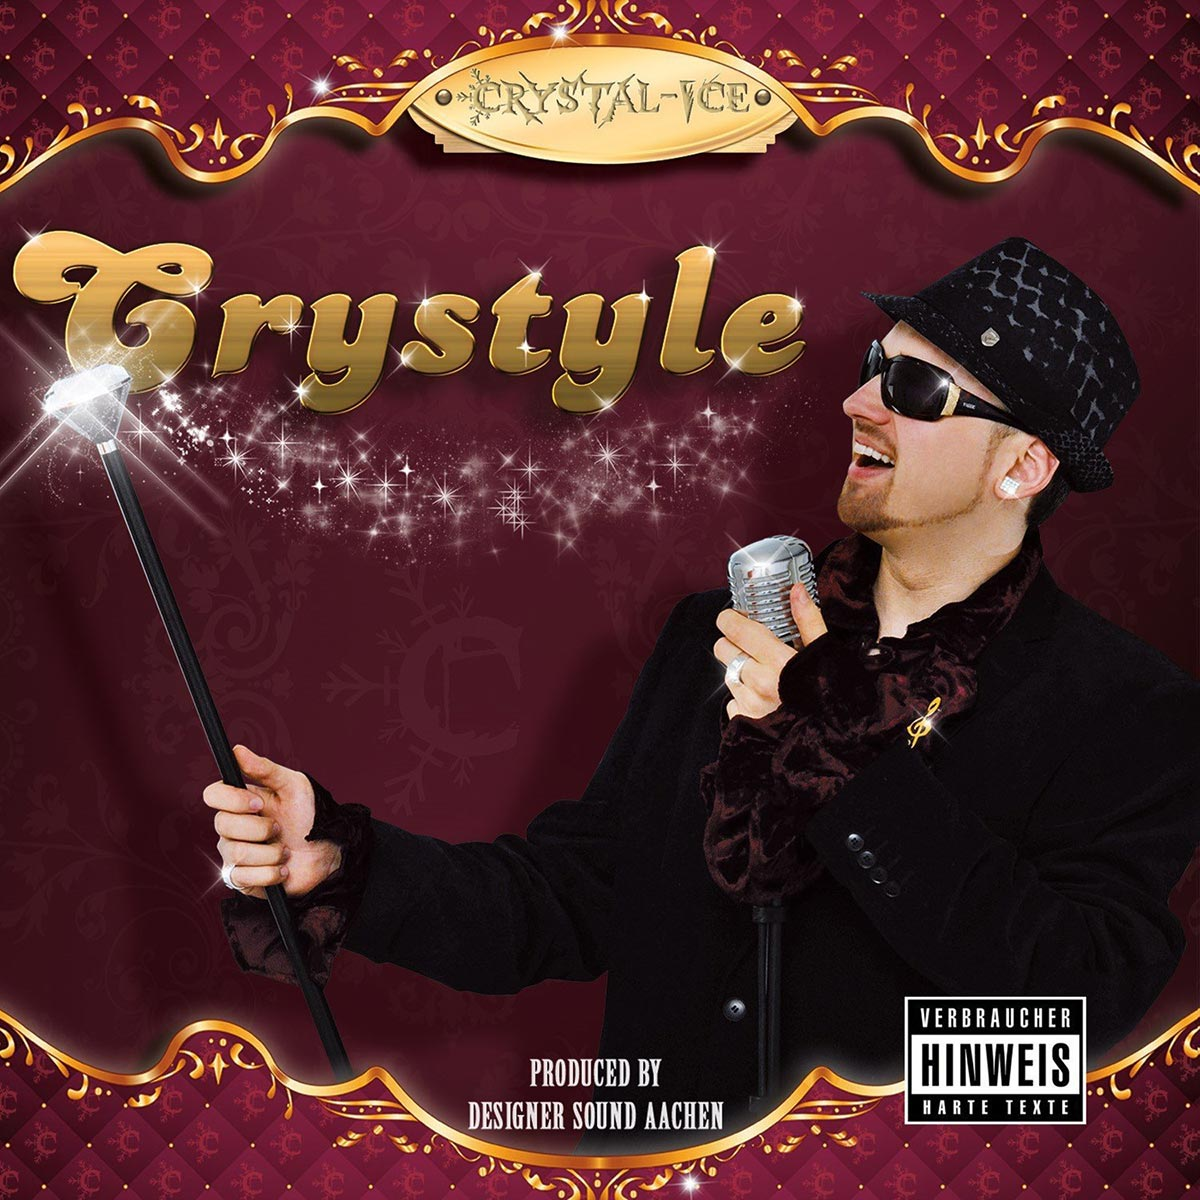 Upcoming: Crystal-Ice - Crystyle